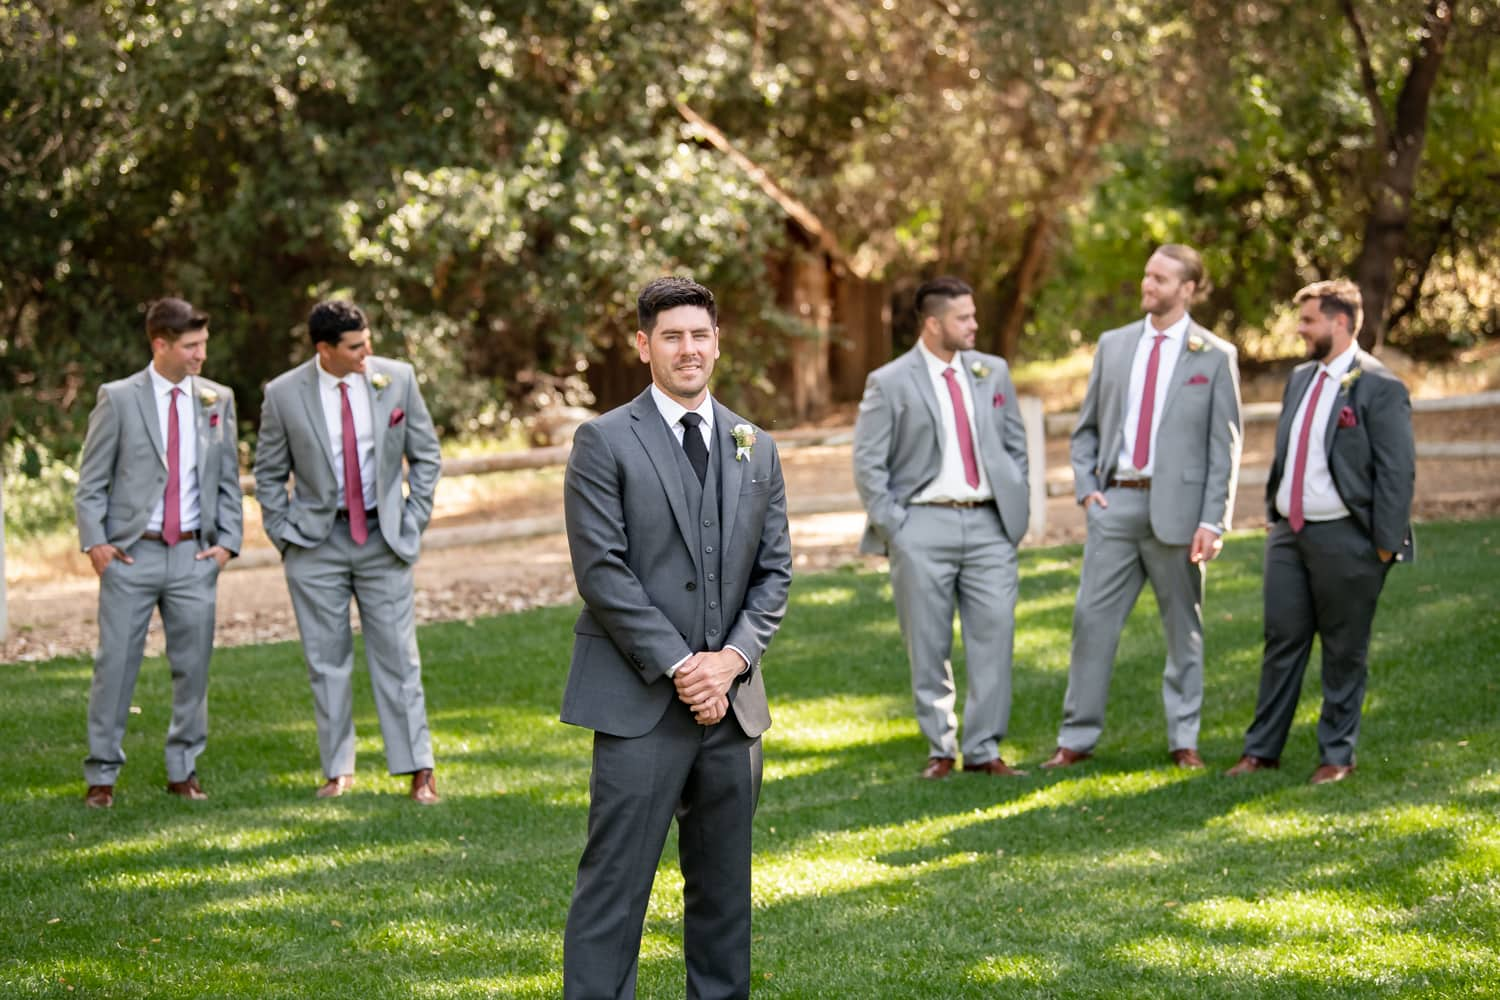 Groom with Groomsmen at the Stone House in Temecula, CA.